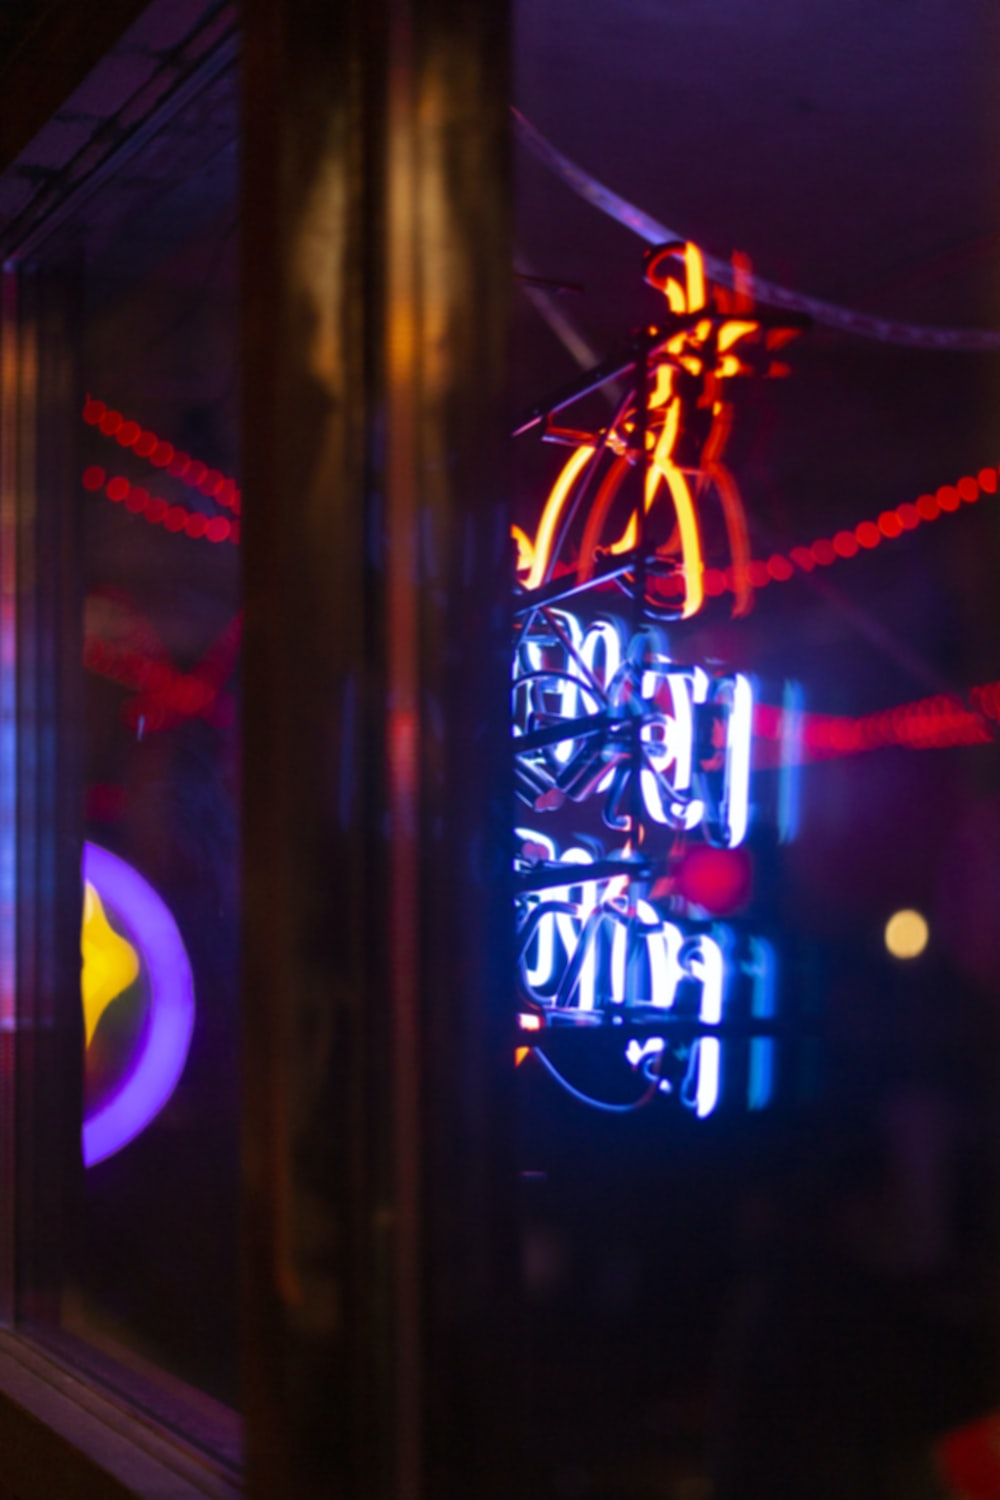 blue, red, and orange neon signage turned-on